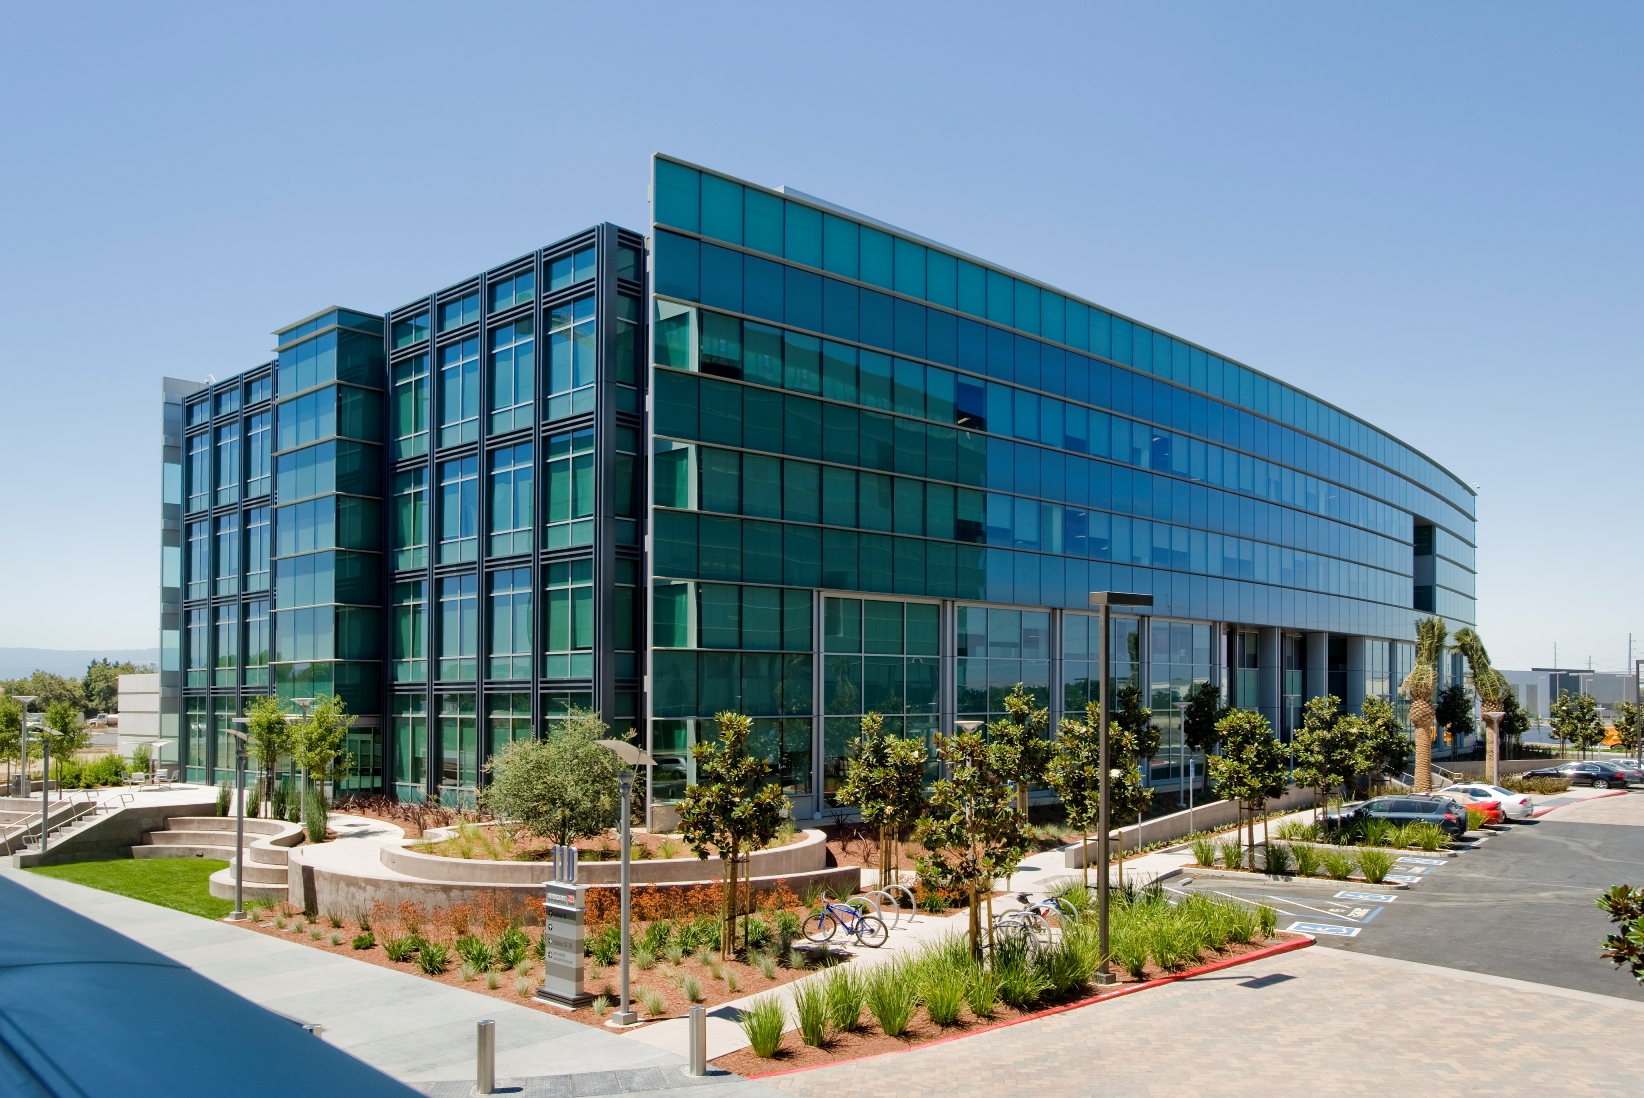 brocade corporate headquarters site in san jose up for